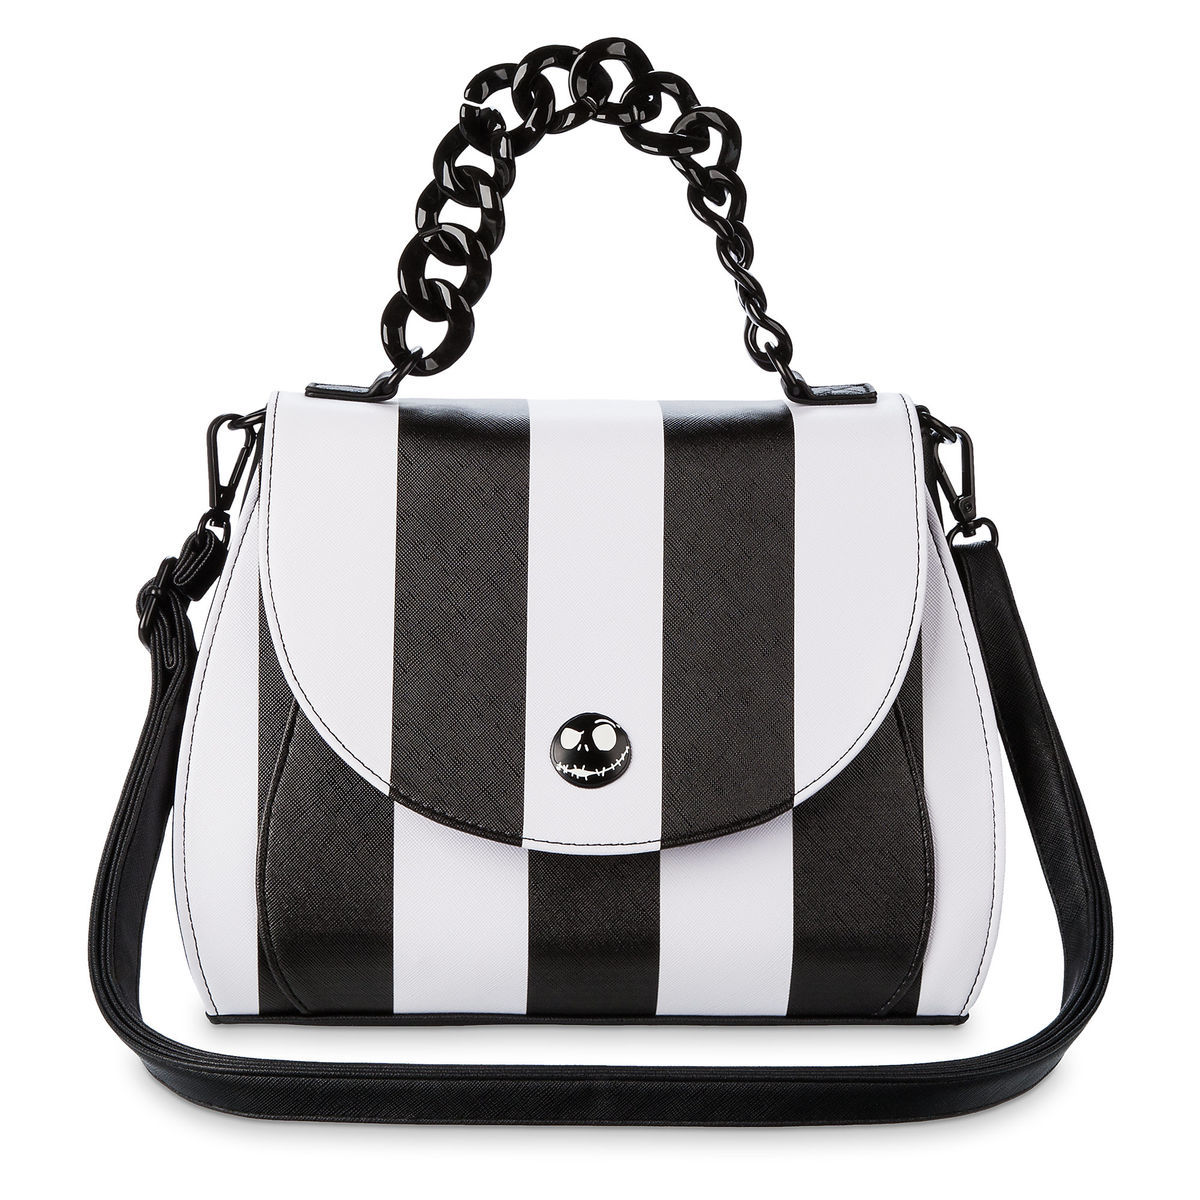 Product Image Of Jack Skellington Crossbody Bag By Loungefly Tim Burton S The Nightmare Before Christmas